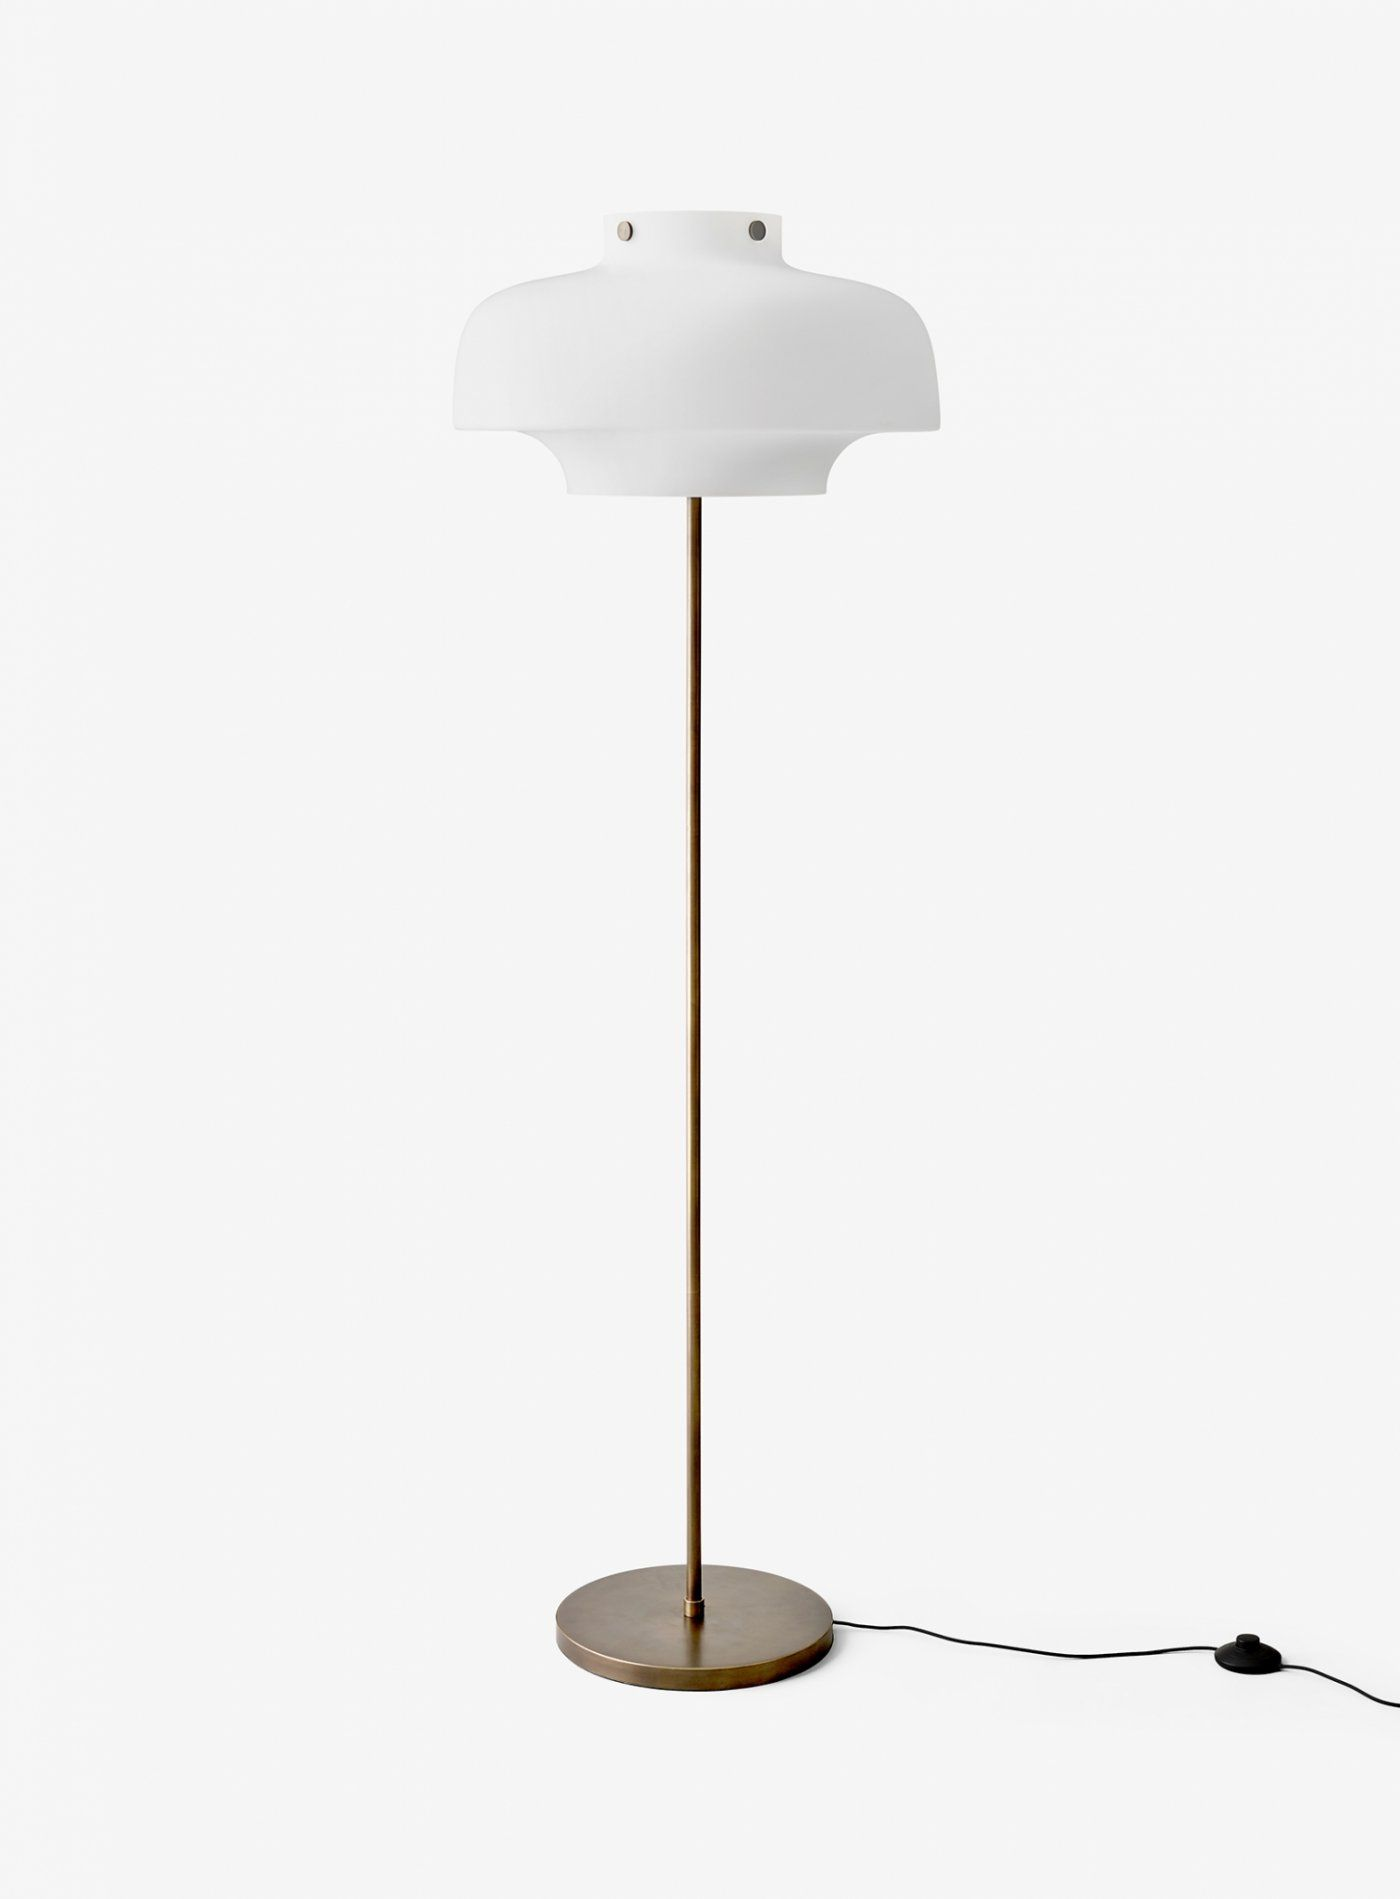 Tradition With Images Lamp Floor Lamp Modern Lighting Design